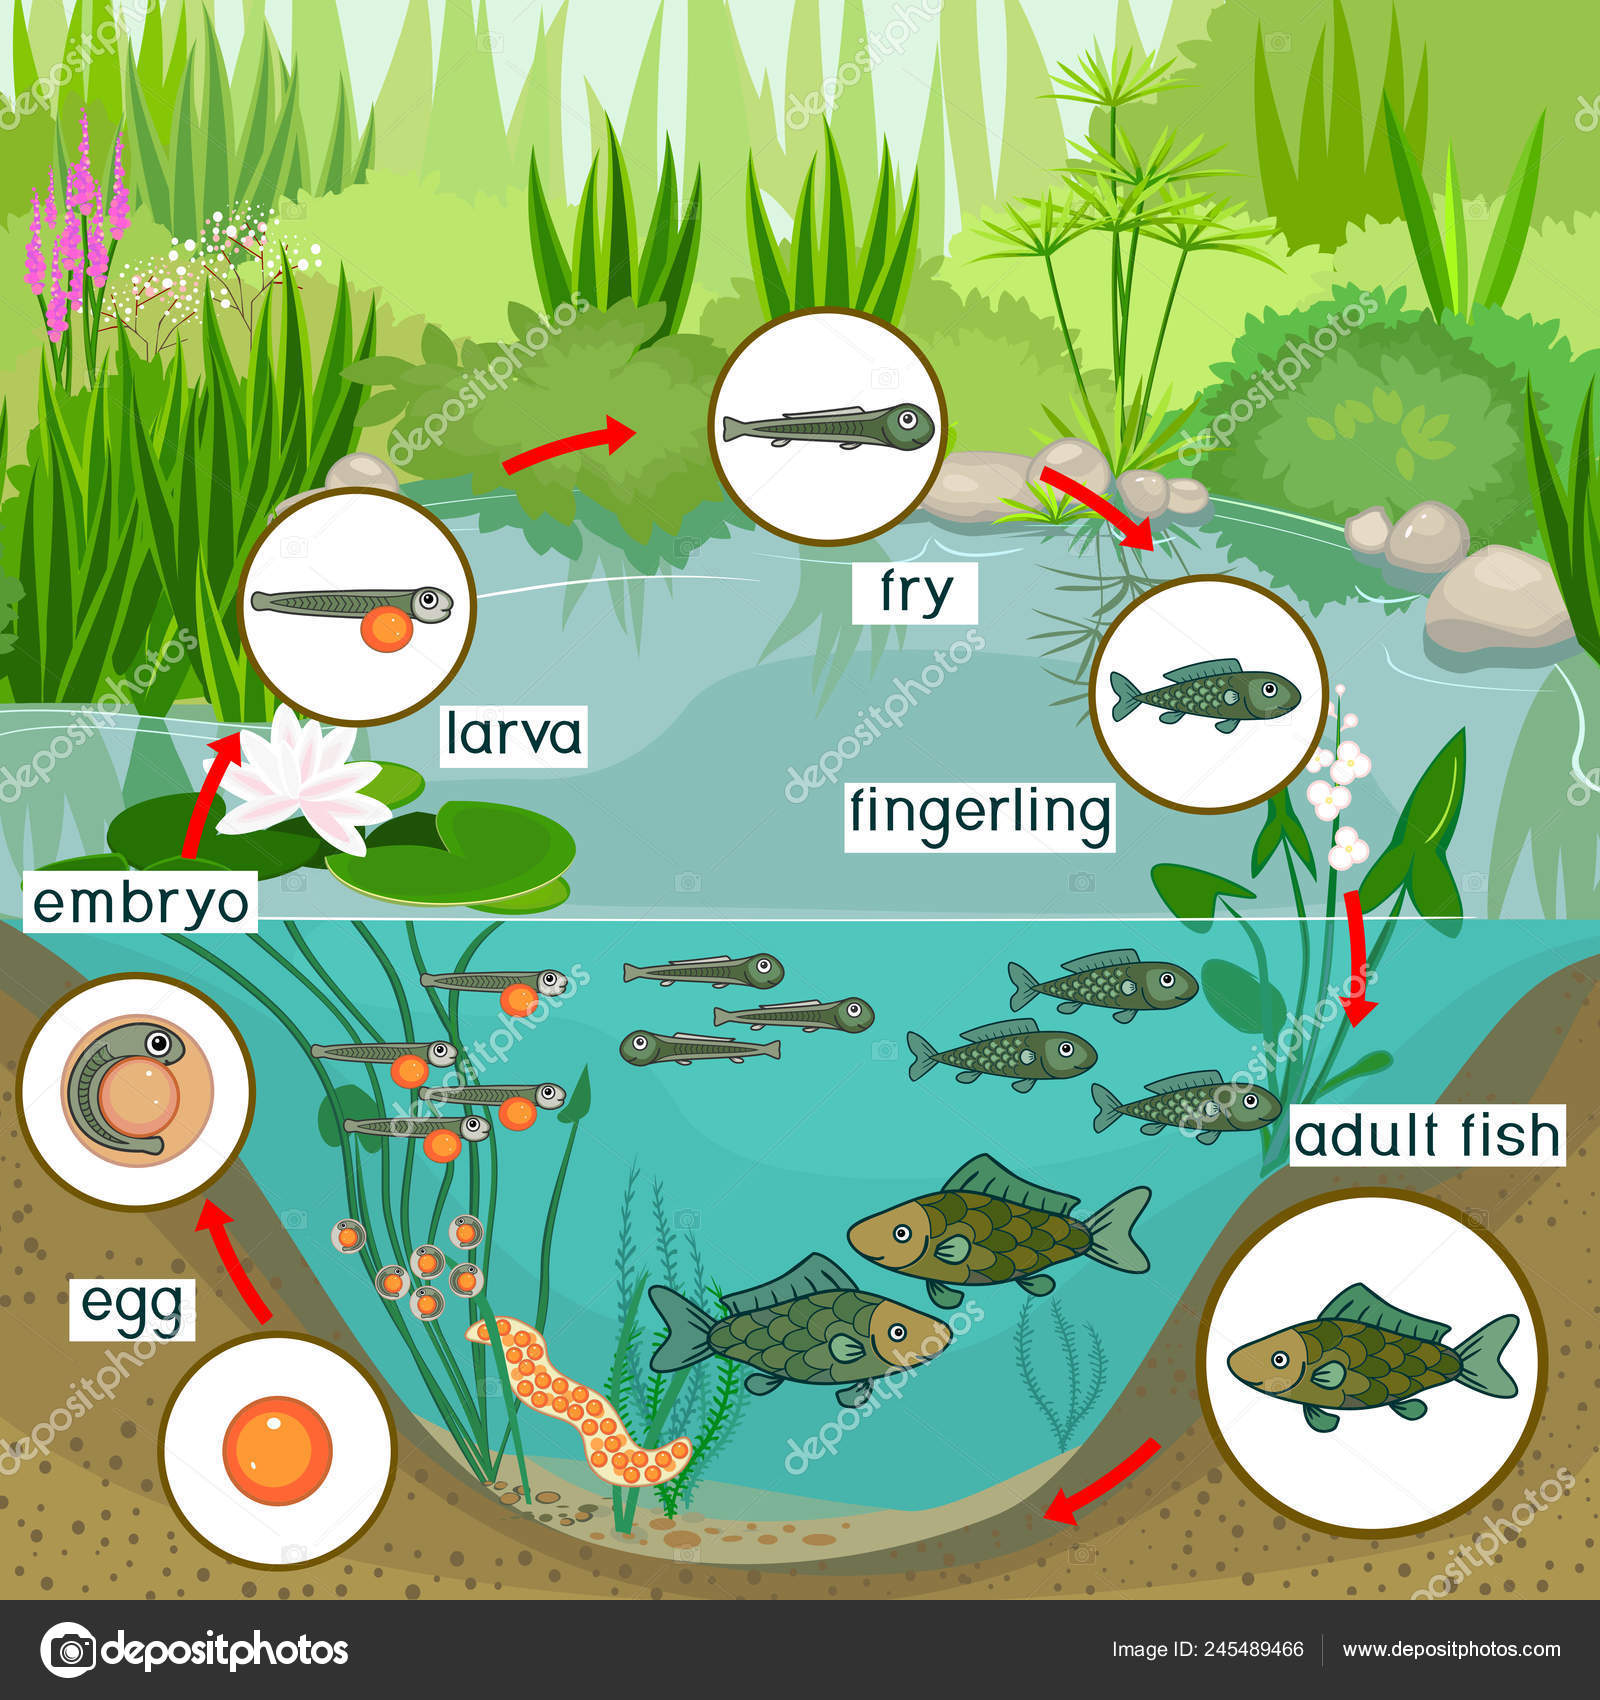 Pond Ecosystem Life Cycle Fish Sequence Stages Development